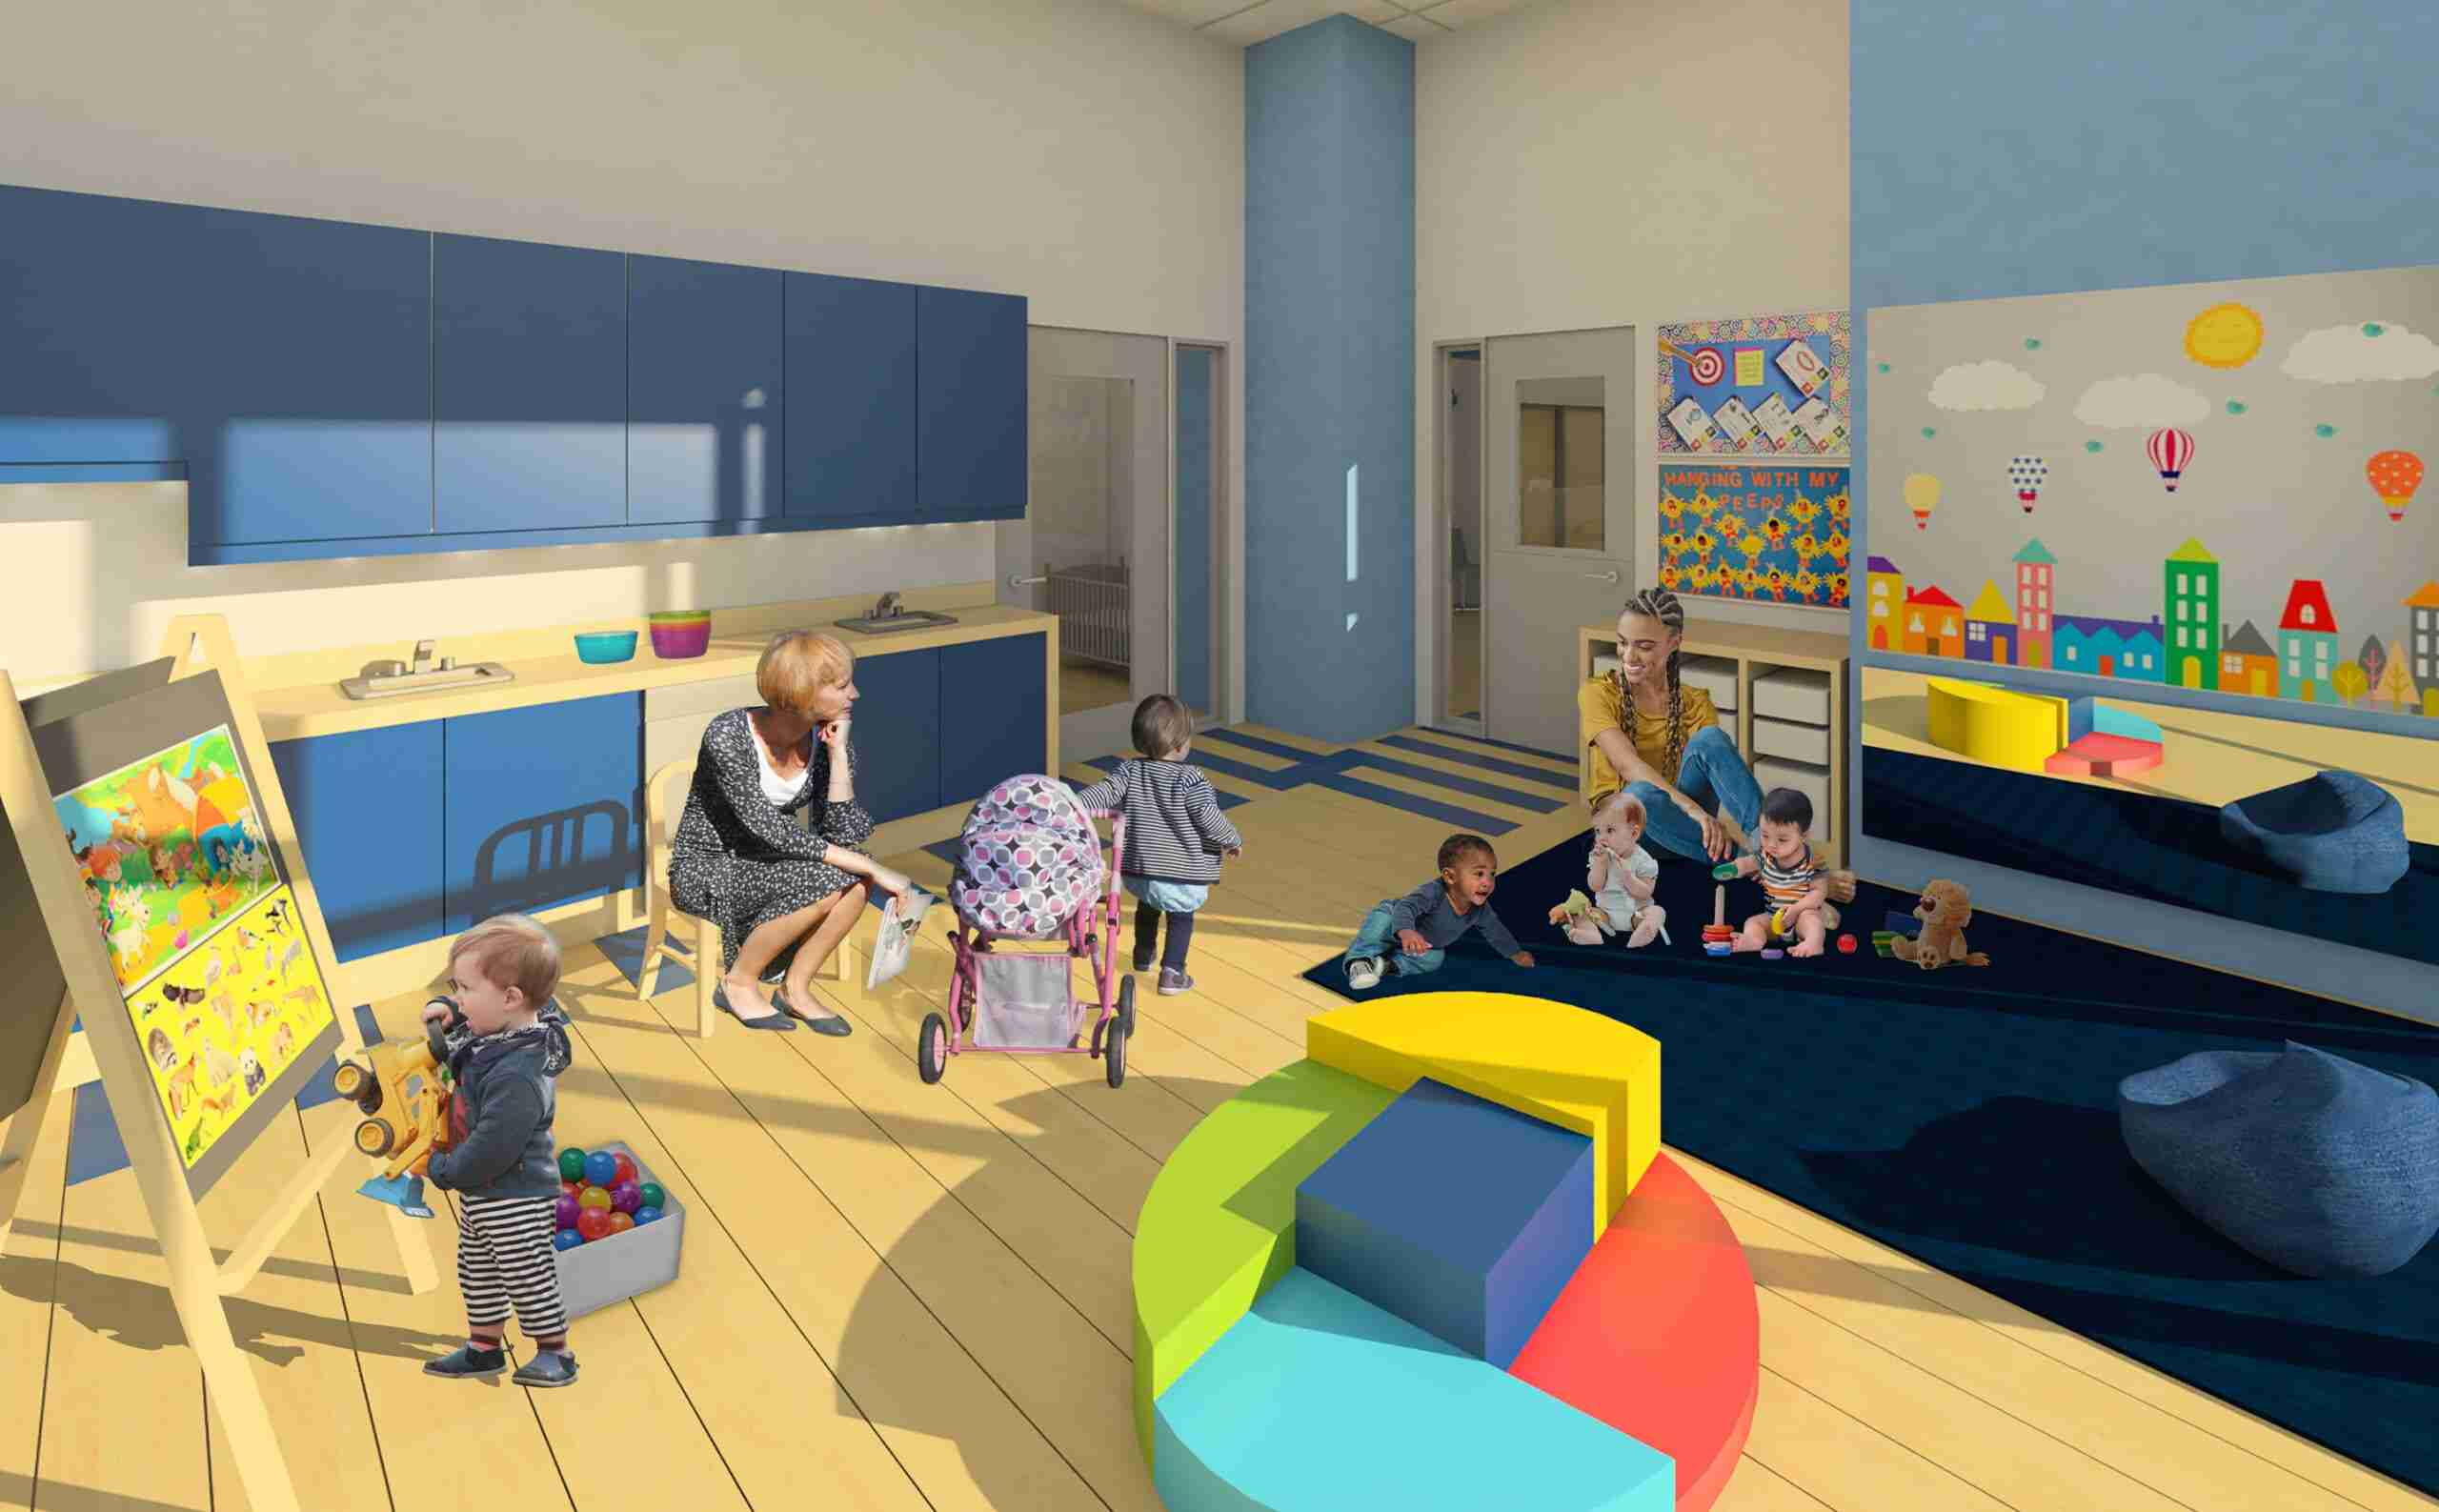 Play room showing infants playing with educational toys